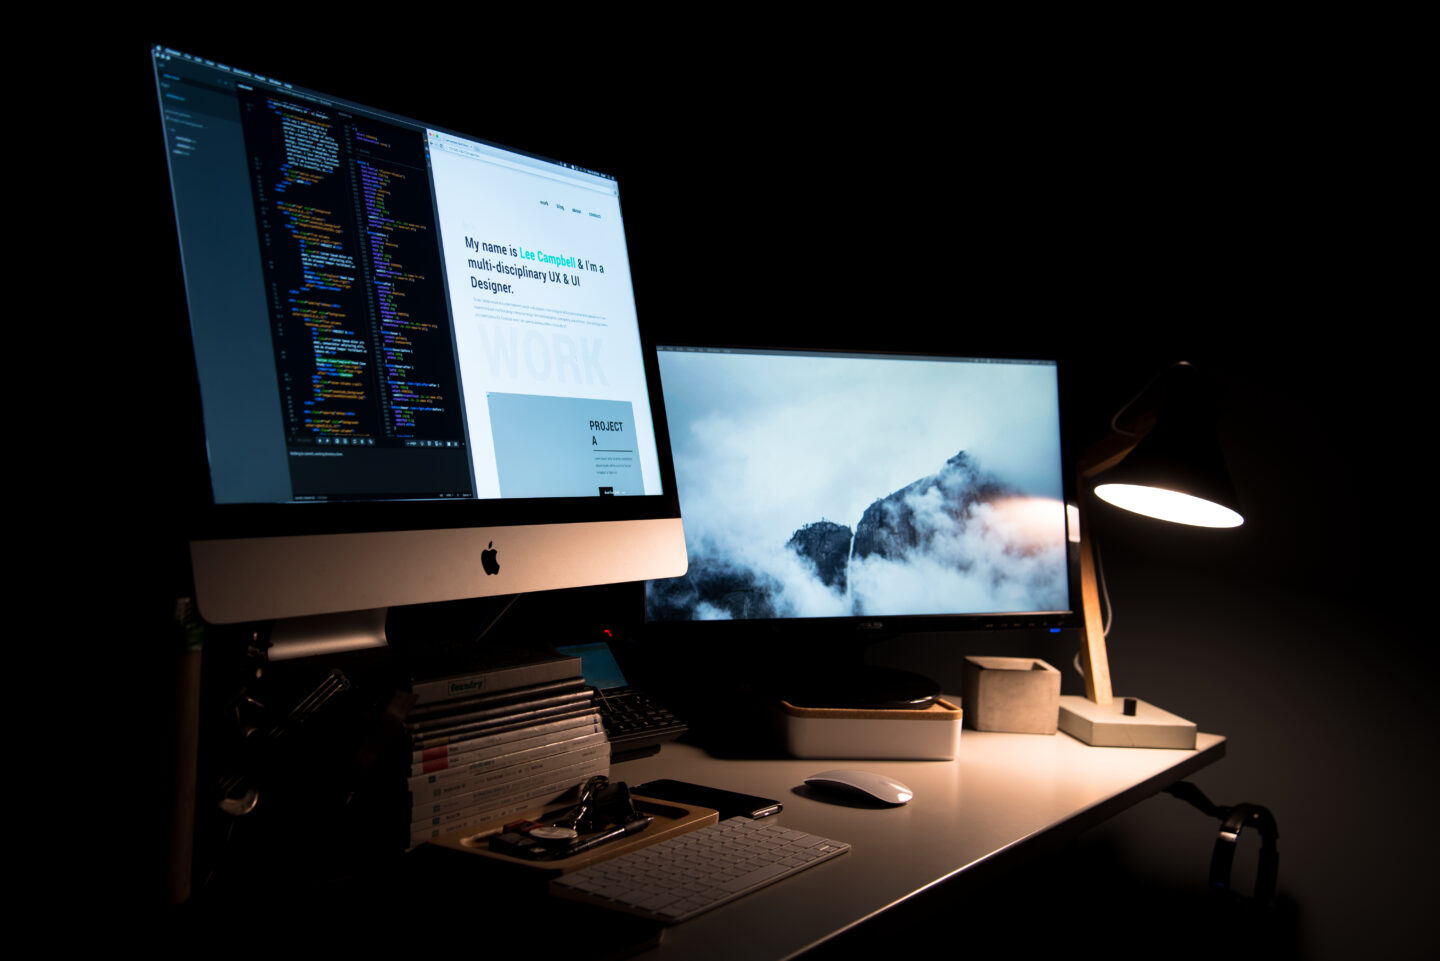 The web developer workplace in the dark room